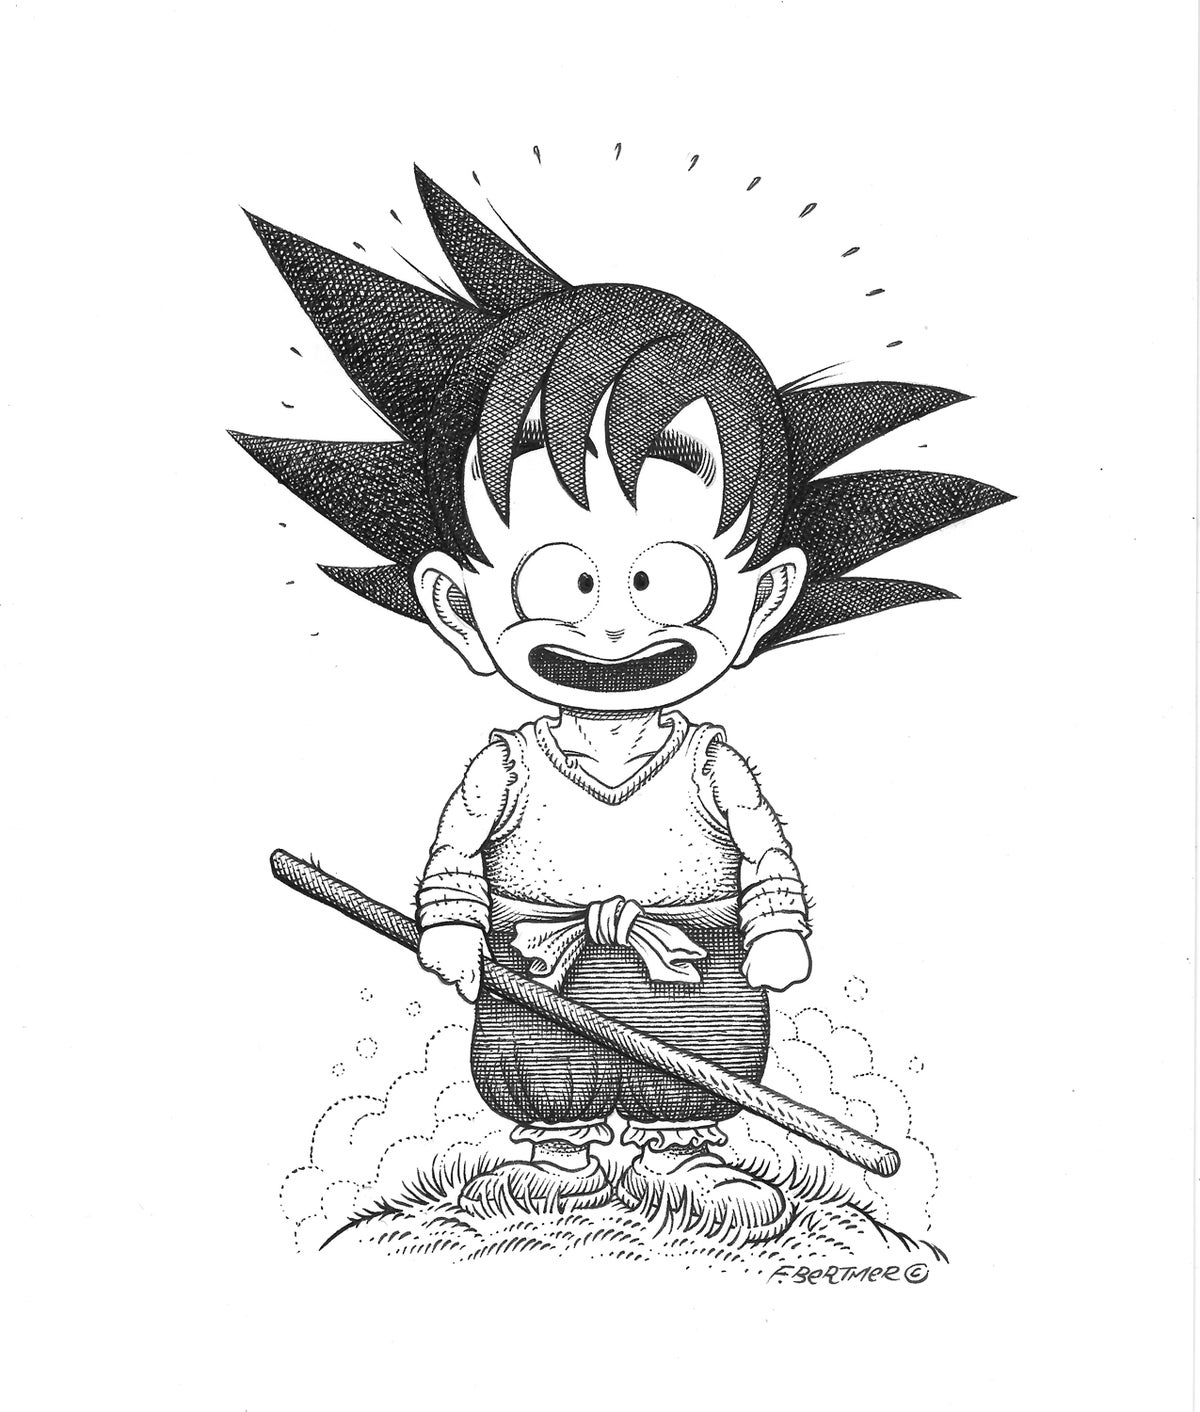 Image of Kid Goku - Original Art